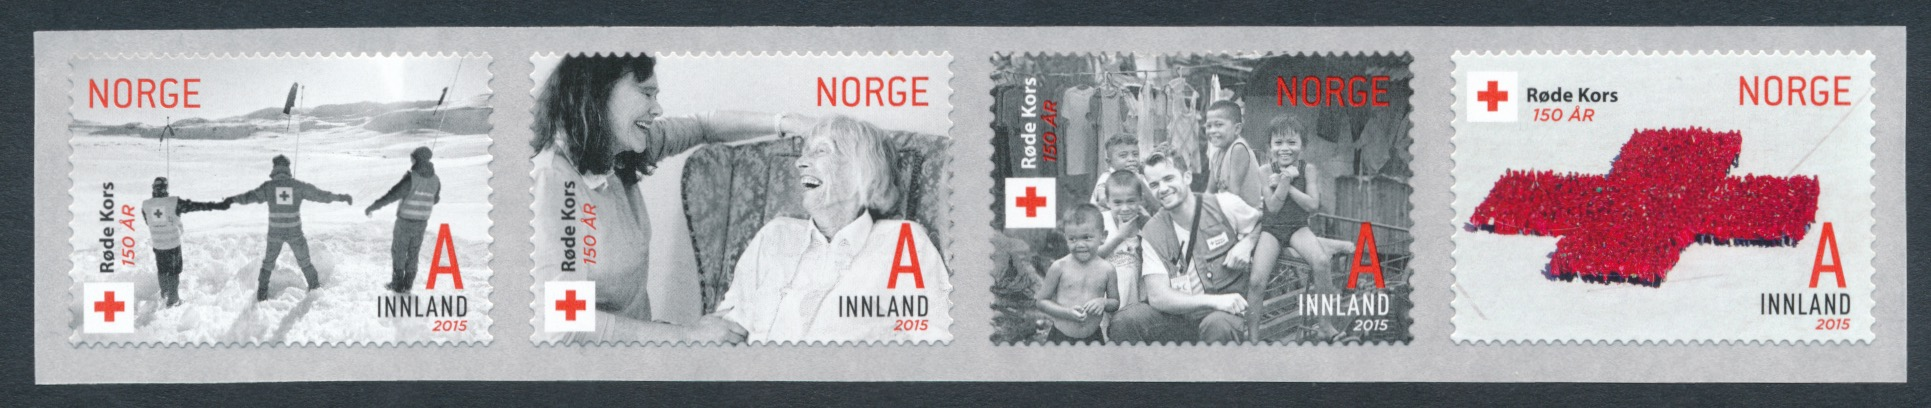 https://www.norstamps.com/content/images/stamps/norway/1899-1902.jpeg